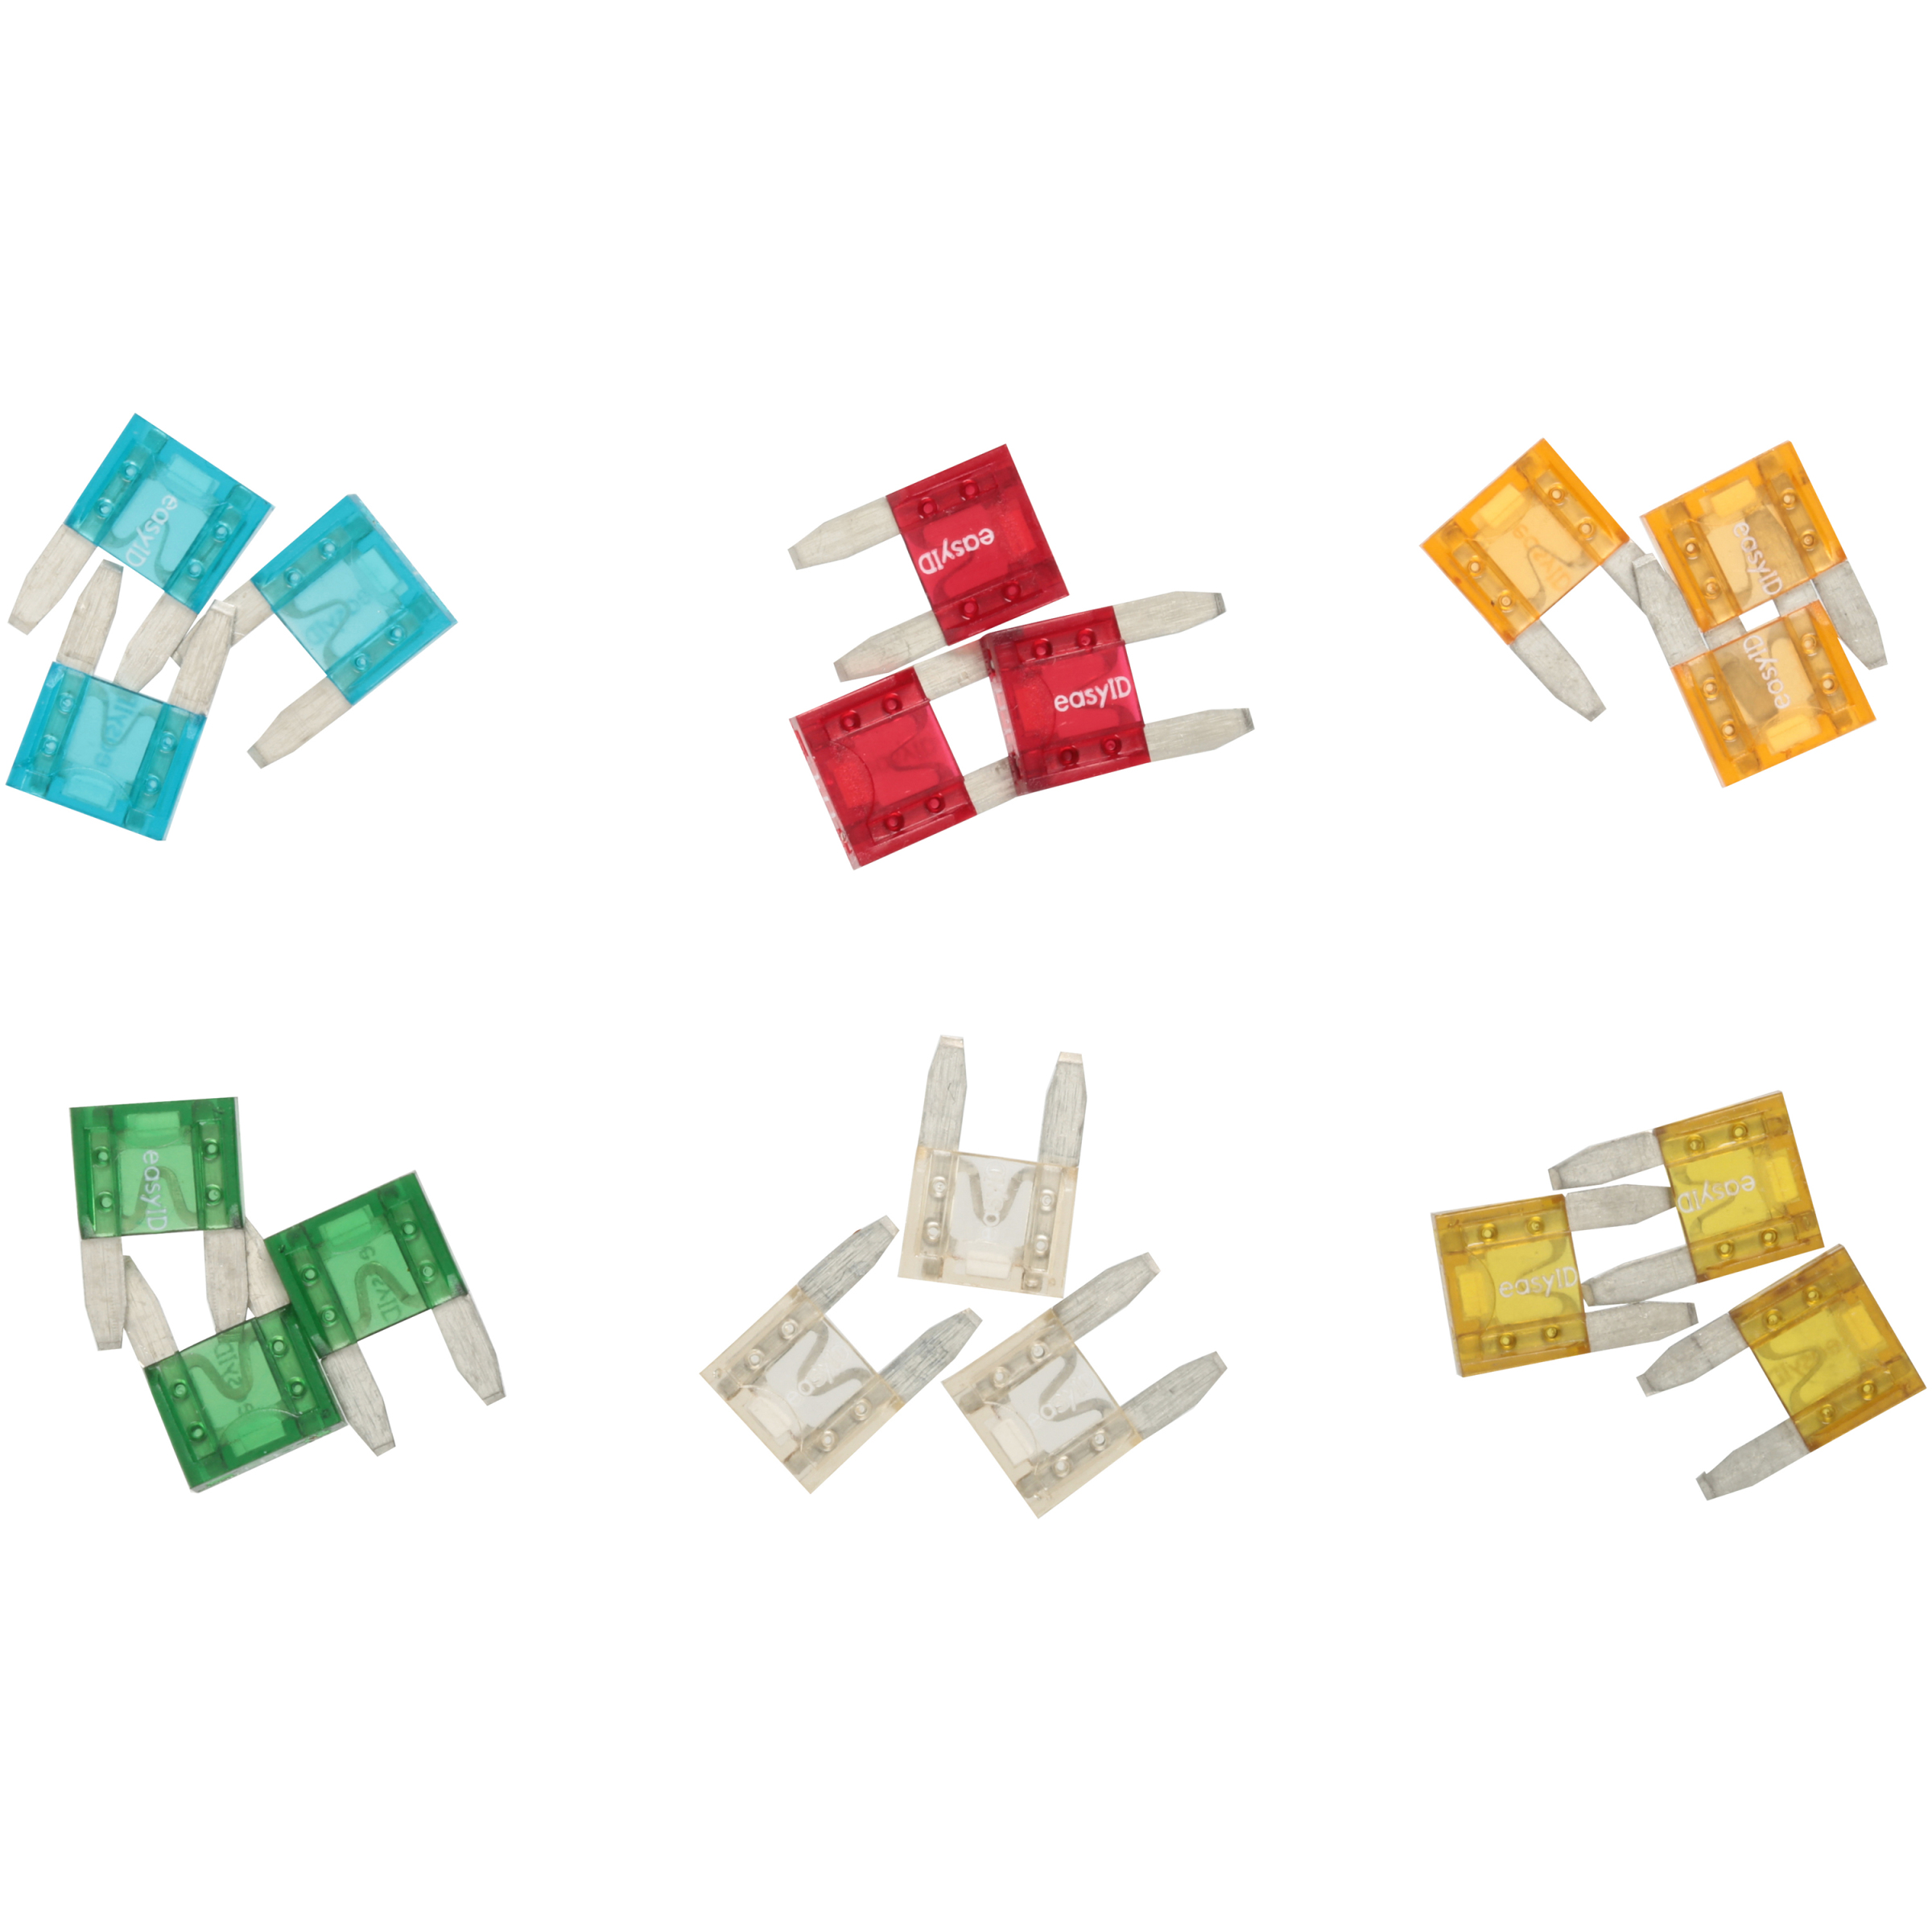 Cooper Bussmann® EasyID™ ATM Illuminating Blade Fuses 16 ct Carded Pack